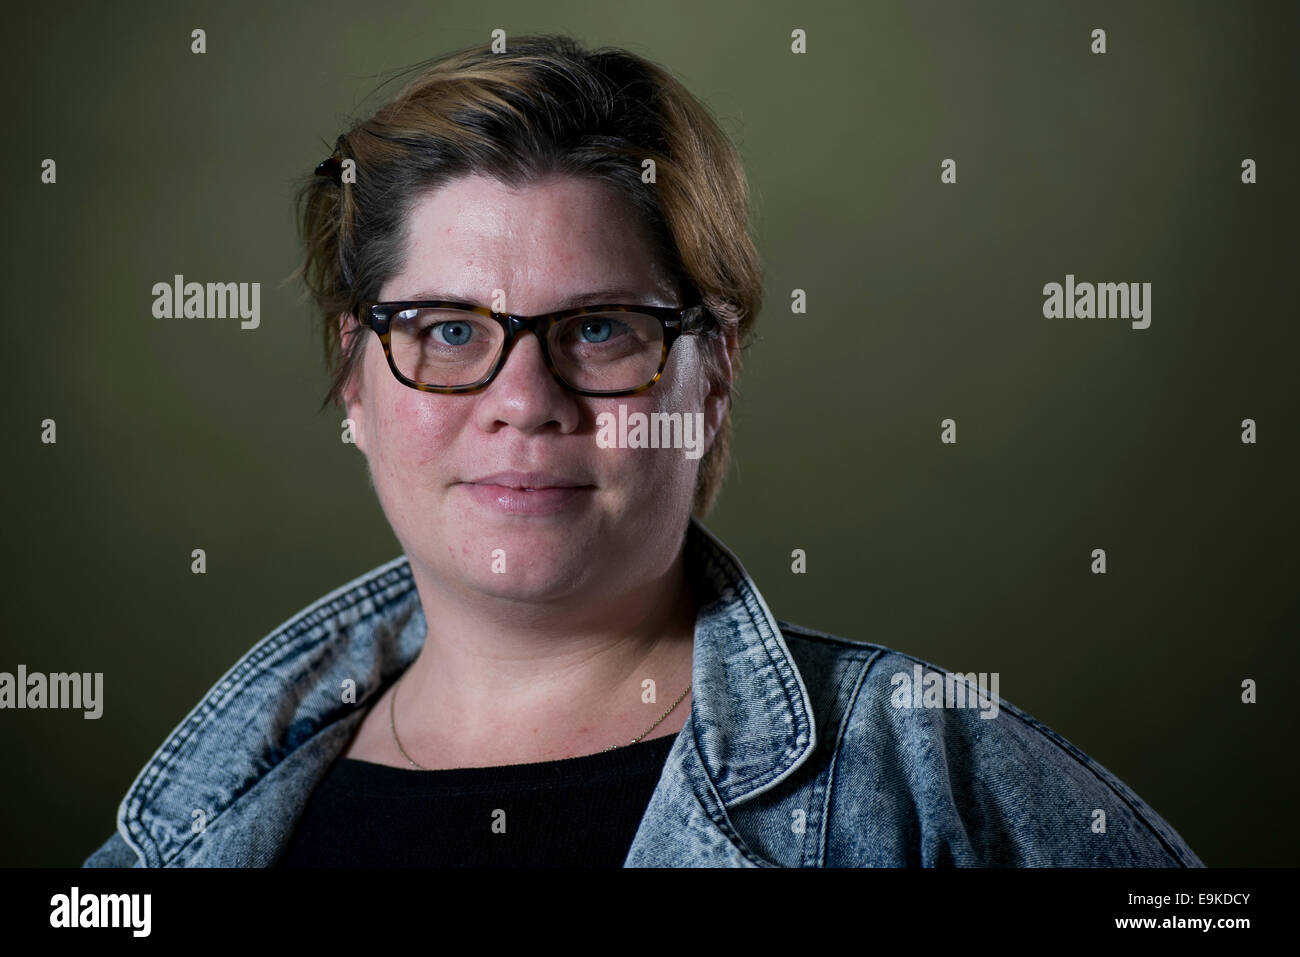 English actress, comedian and writer Katy Brand appears at the Edinburgh International Book Festival. - Stock Image